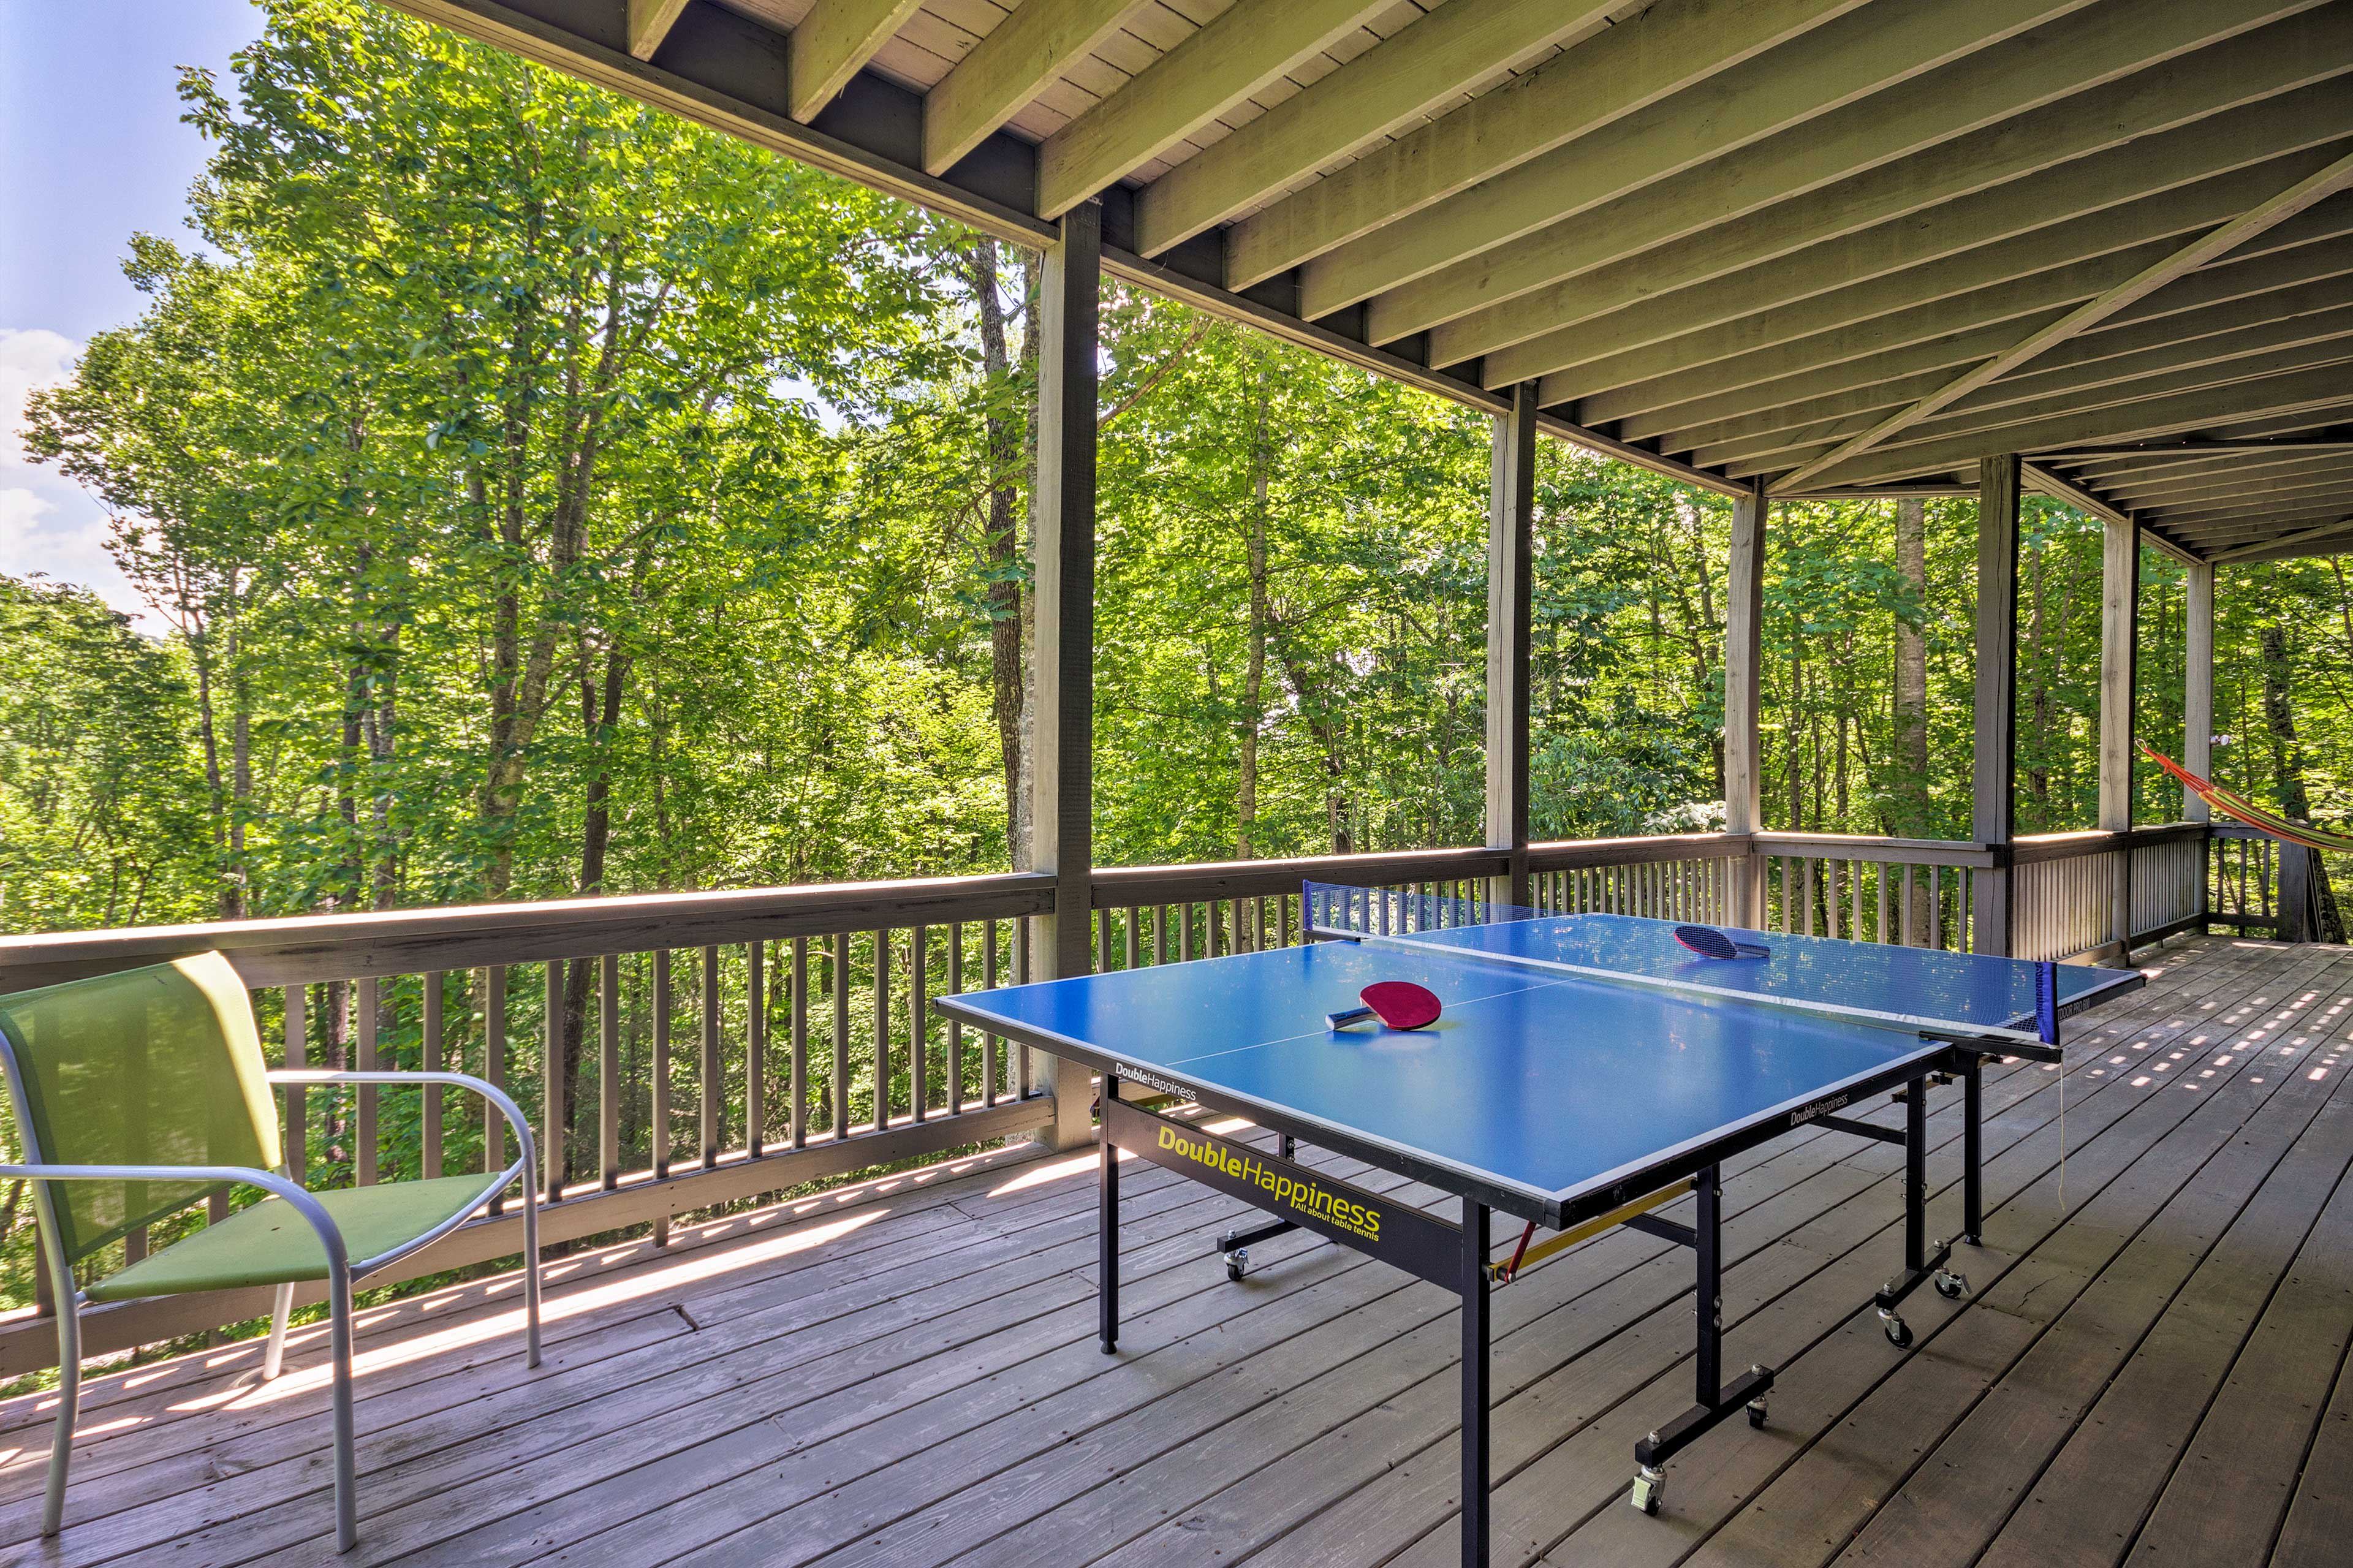 The lower level deck has a ping pong table.